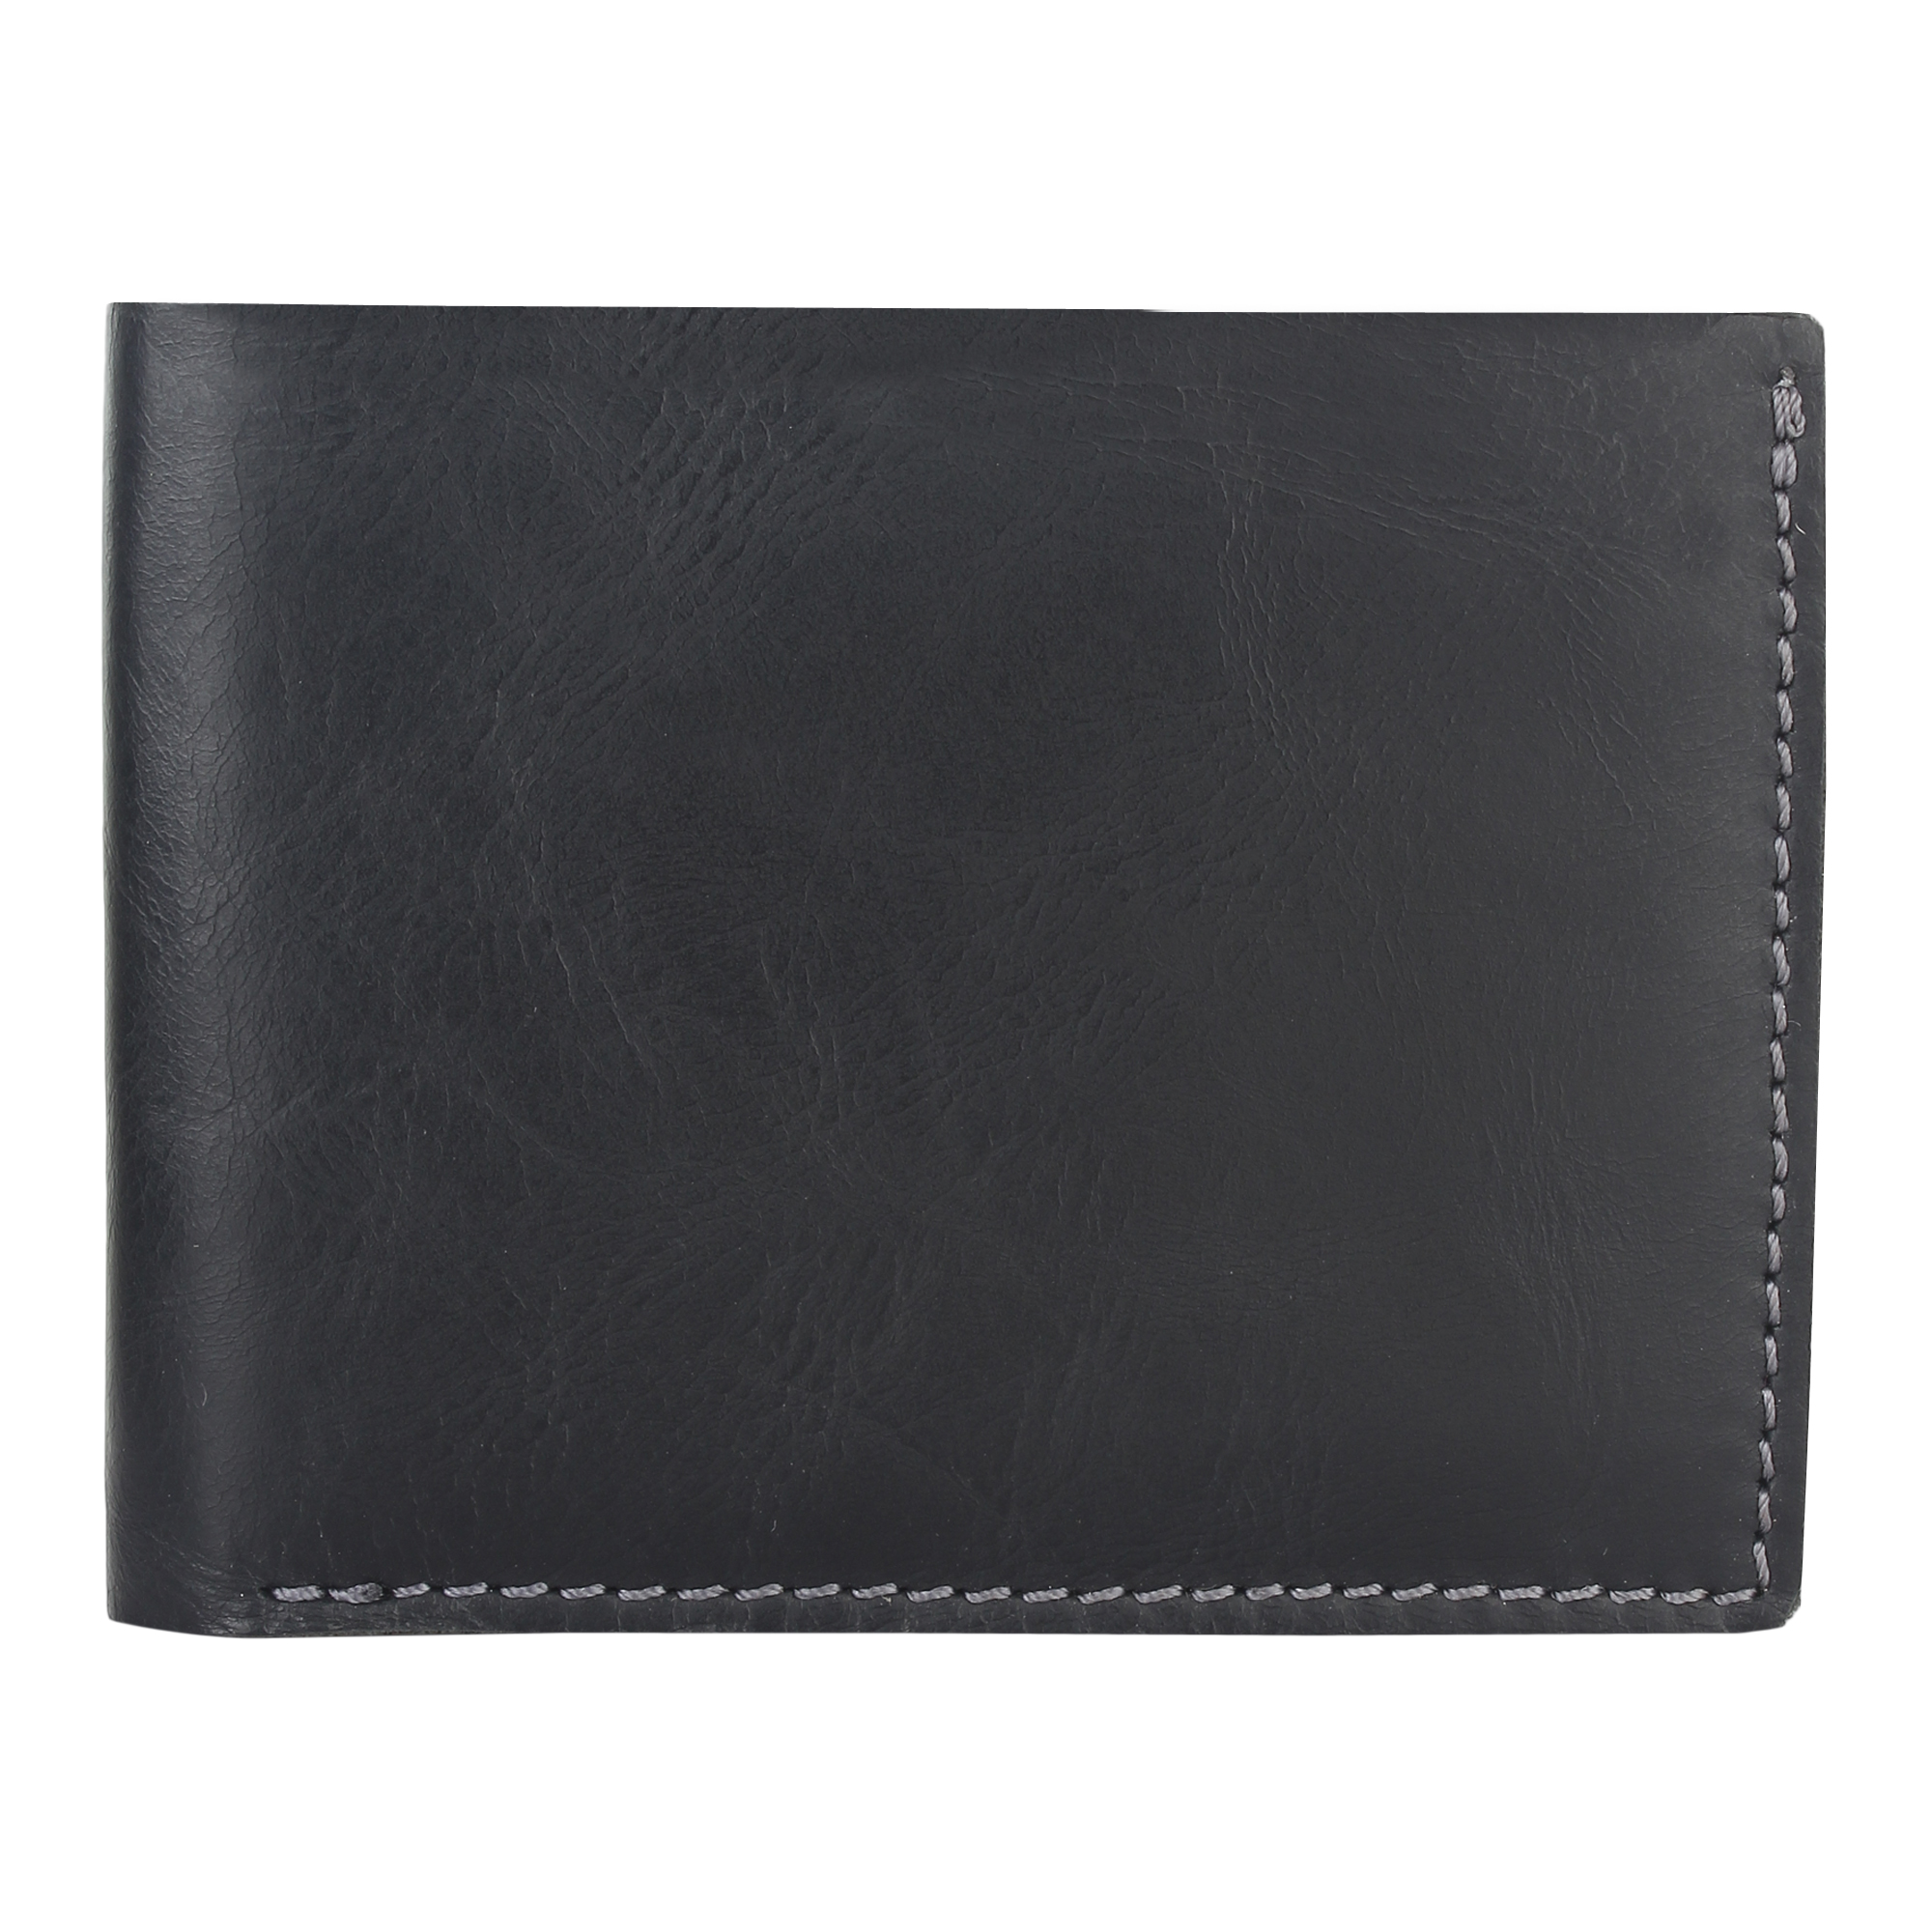 Leather Wallets Manufacturers in Venezuela, Leather Wallets Suppliers in Venezuela, Leather Wallets Wholesalers in Venezuela, Leather Wallets Traders in Venezuela, custom leather wallet manufacturers in Venezuela, Leathe